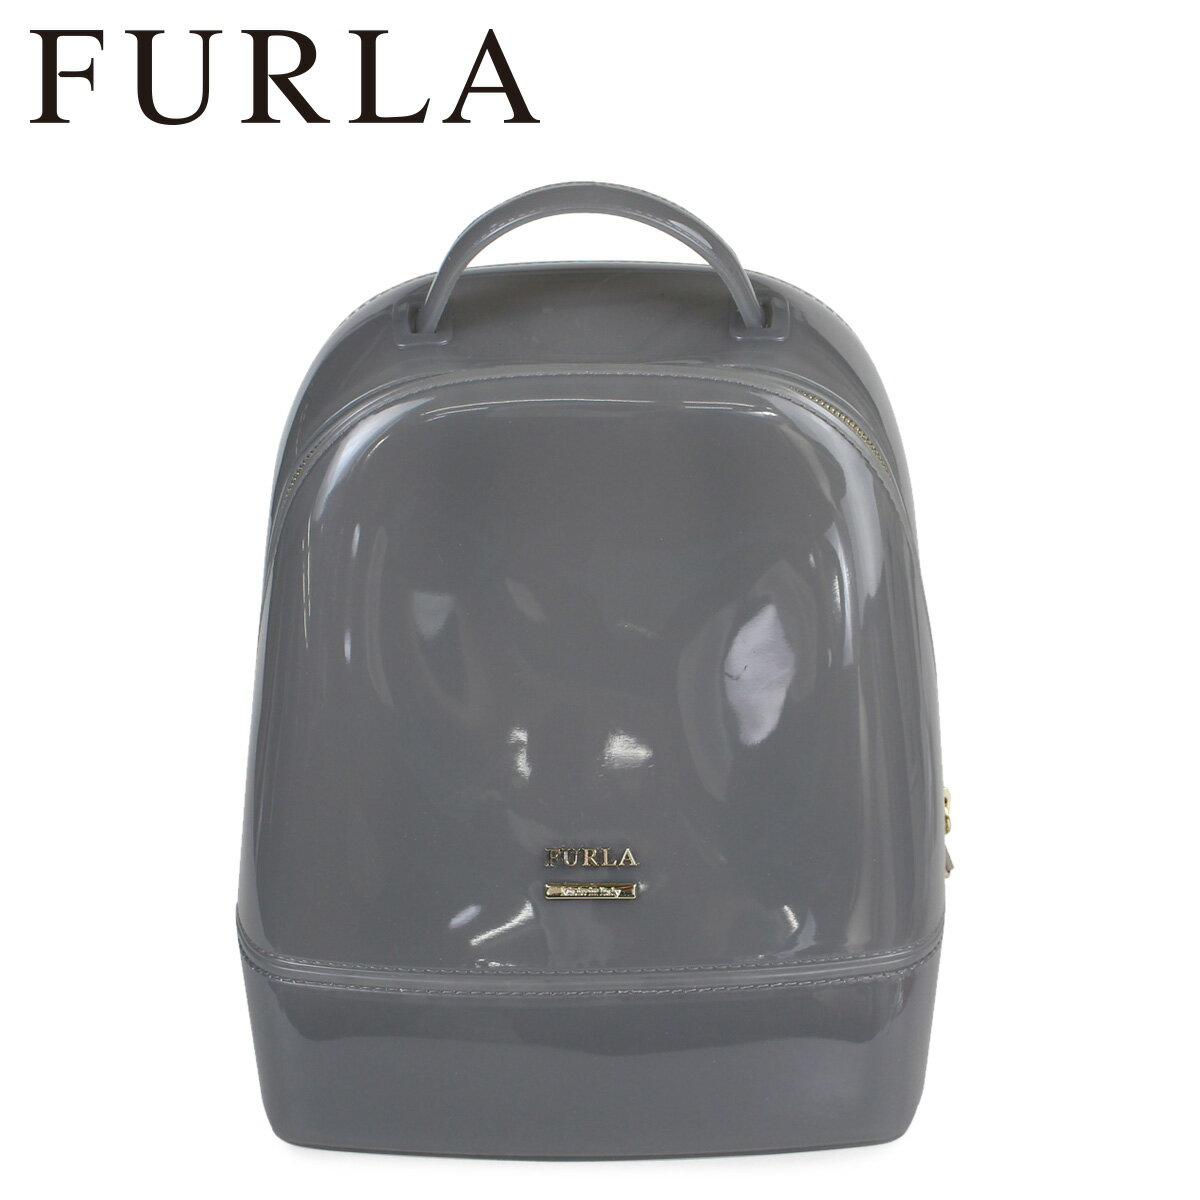 【SOLD OUT】 FURLA CANDY S BACK PACK RPSA フルラ バッグ リュック バックパック レディース グレー 885219 [1712]